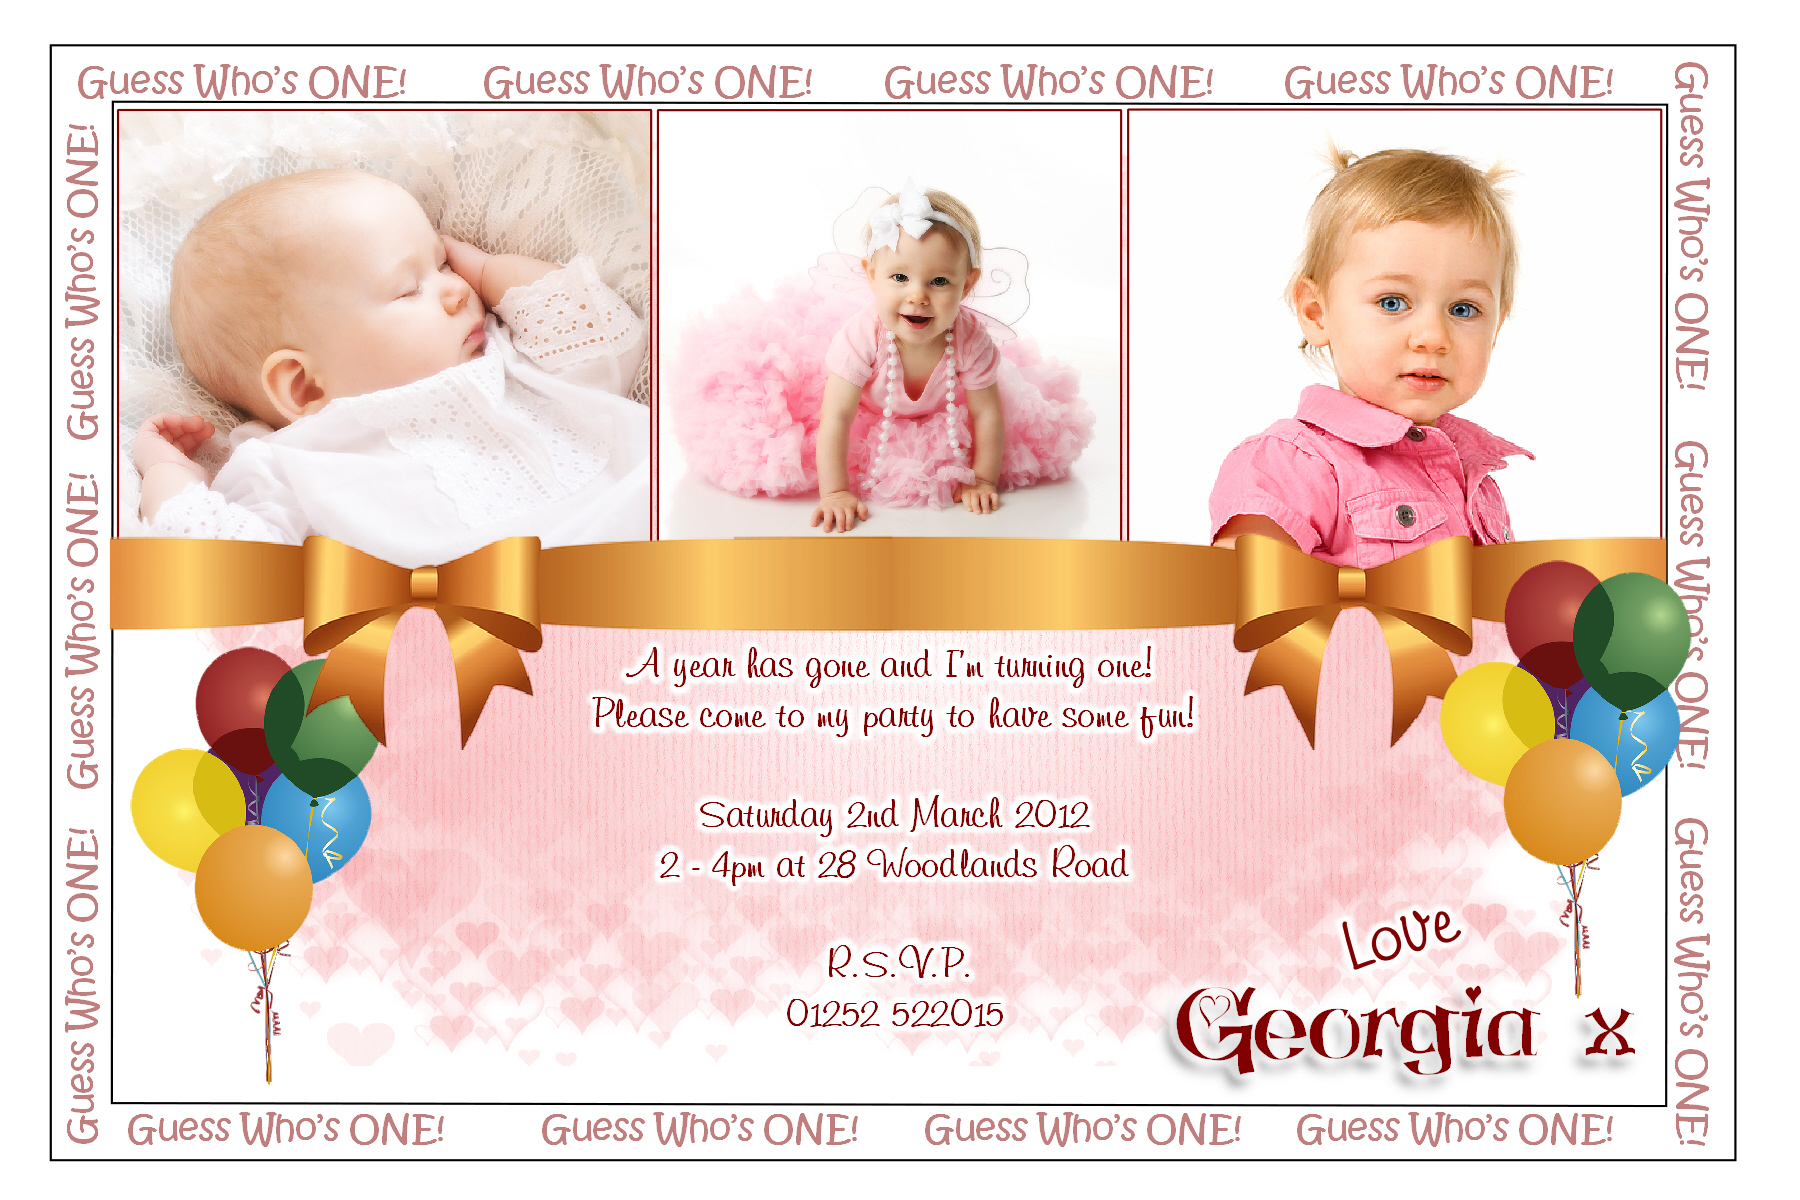 birthday party invitation cards online india ; 1st-birthday-invitation-card-indian-style-inspirational-personalized-girls-1st-first-birthday-party-invitation-with-pink-of-1st-birthday-invitation-card-indian-style